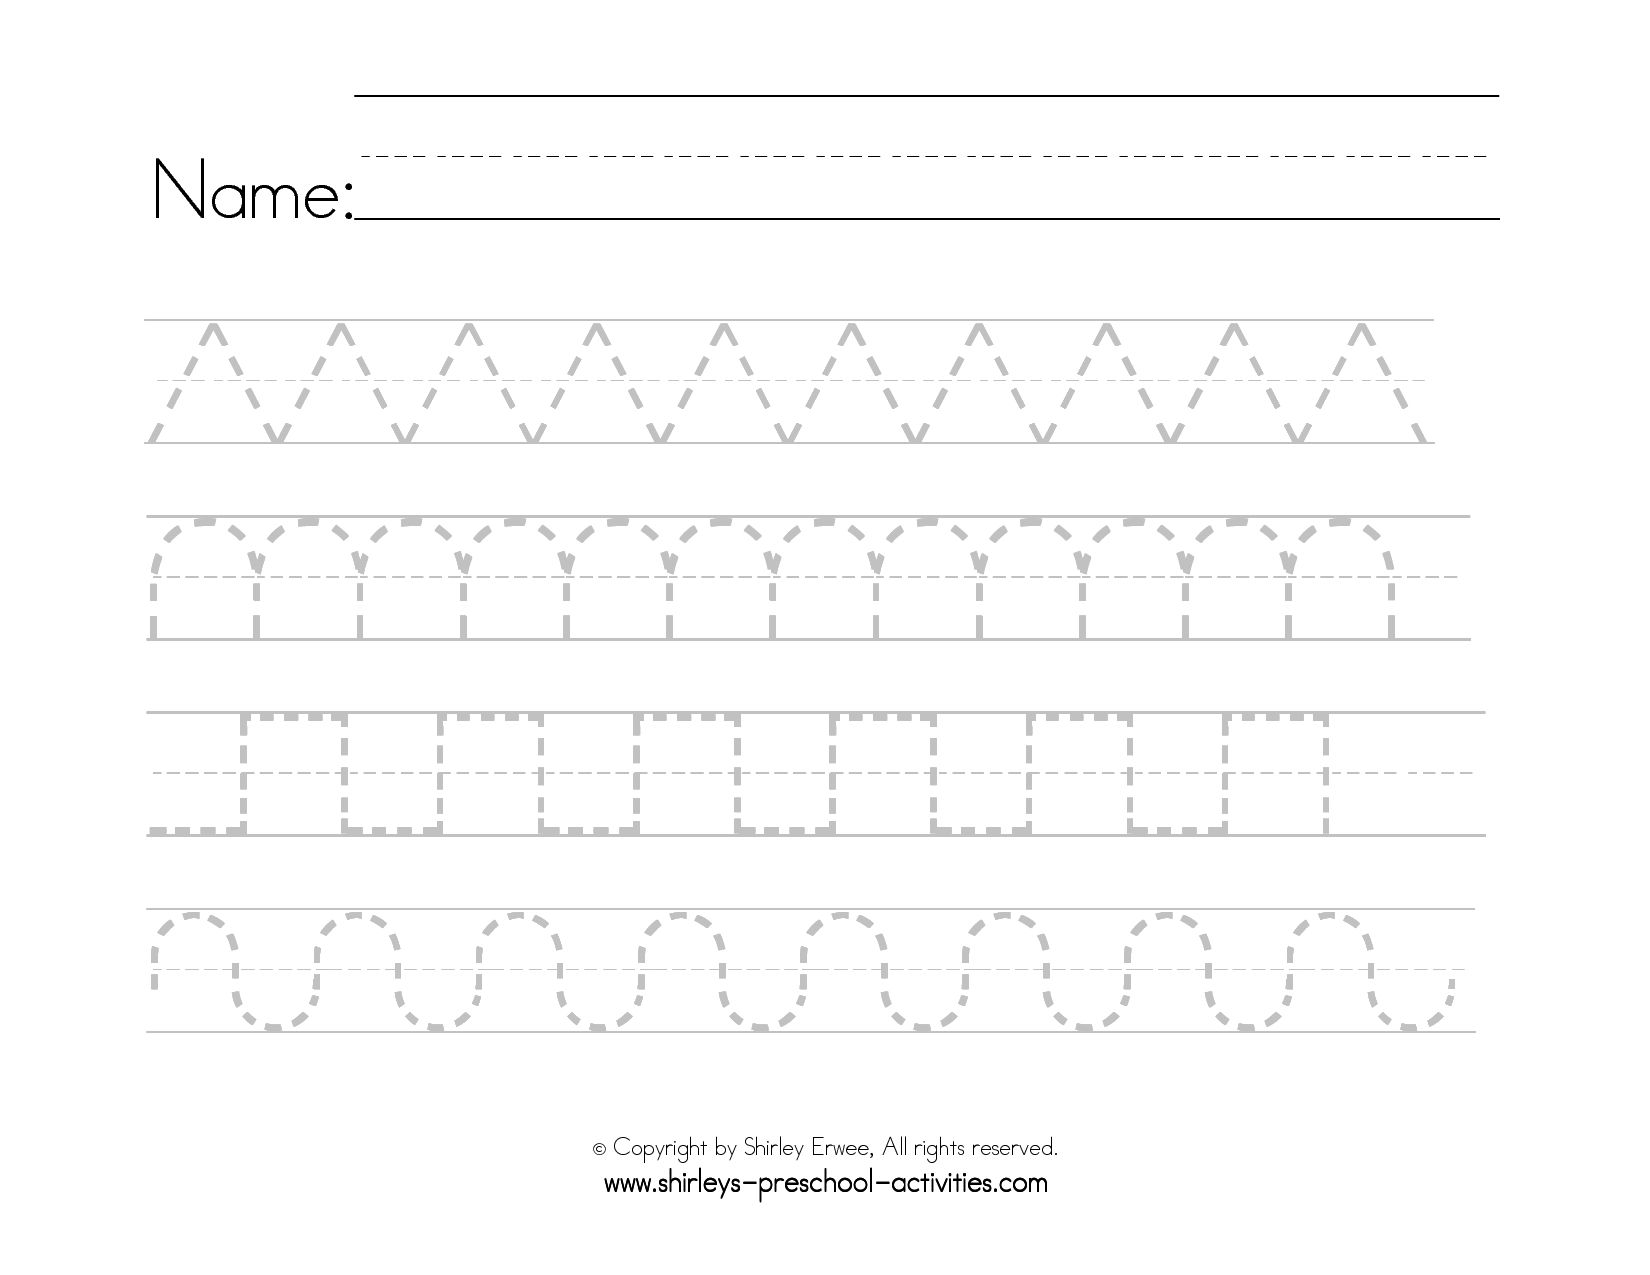 Level Cursive Writing Worksheets Free Printable Worksheets